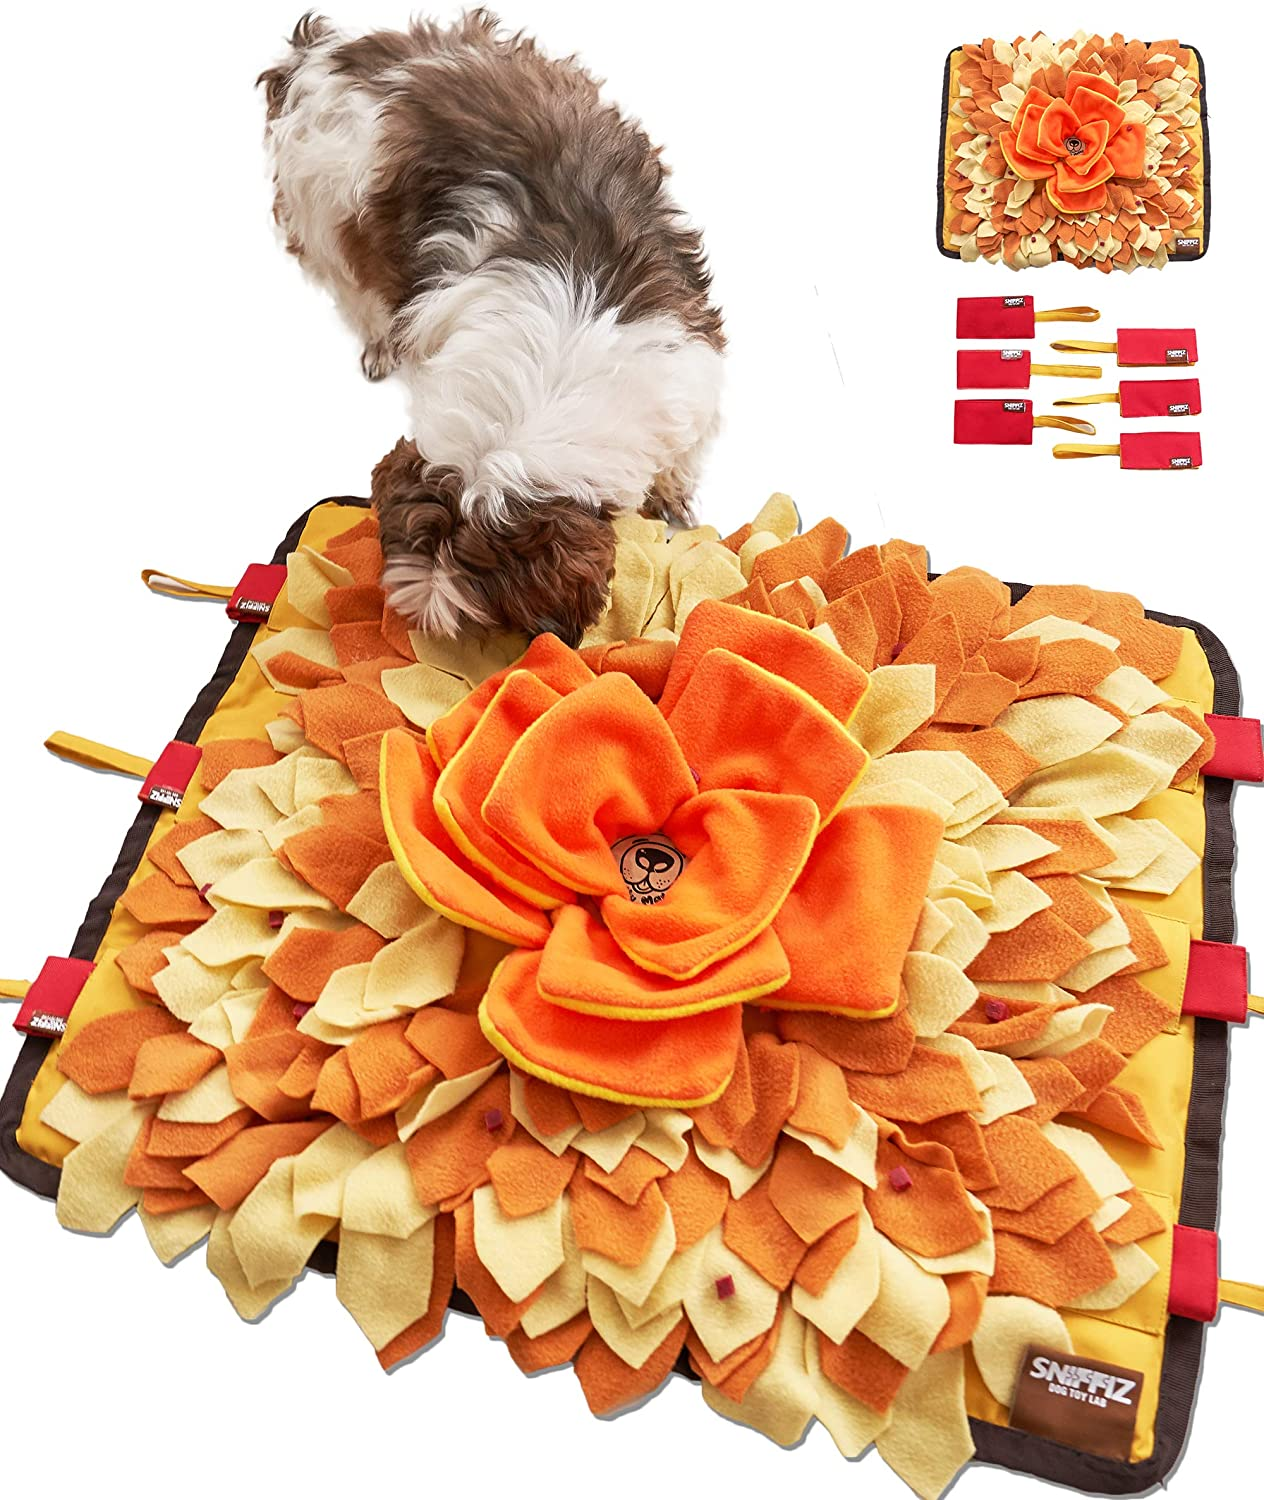 Sniffiz SmellyMatty Snuffle Mat for Dogs - Interactive Food IQ Enrichment Puzzle Toy Package (Large Nosework Orange Mat + Mini Treat Puzzles X 6) - Mind Stimulating Brain Games for Boredom